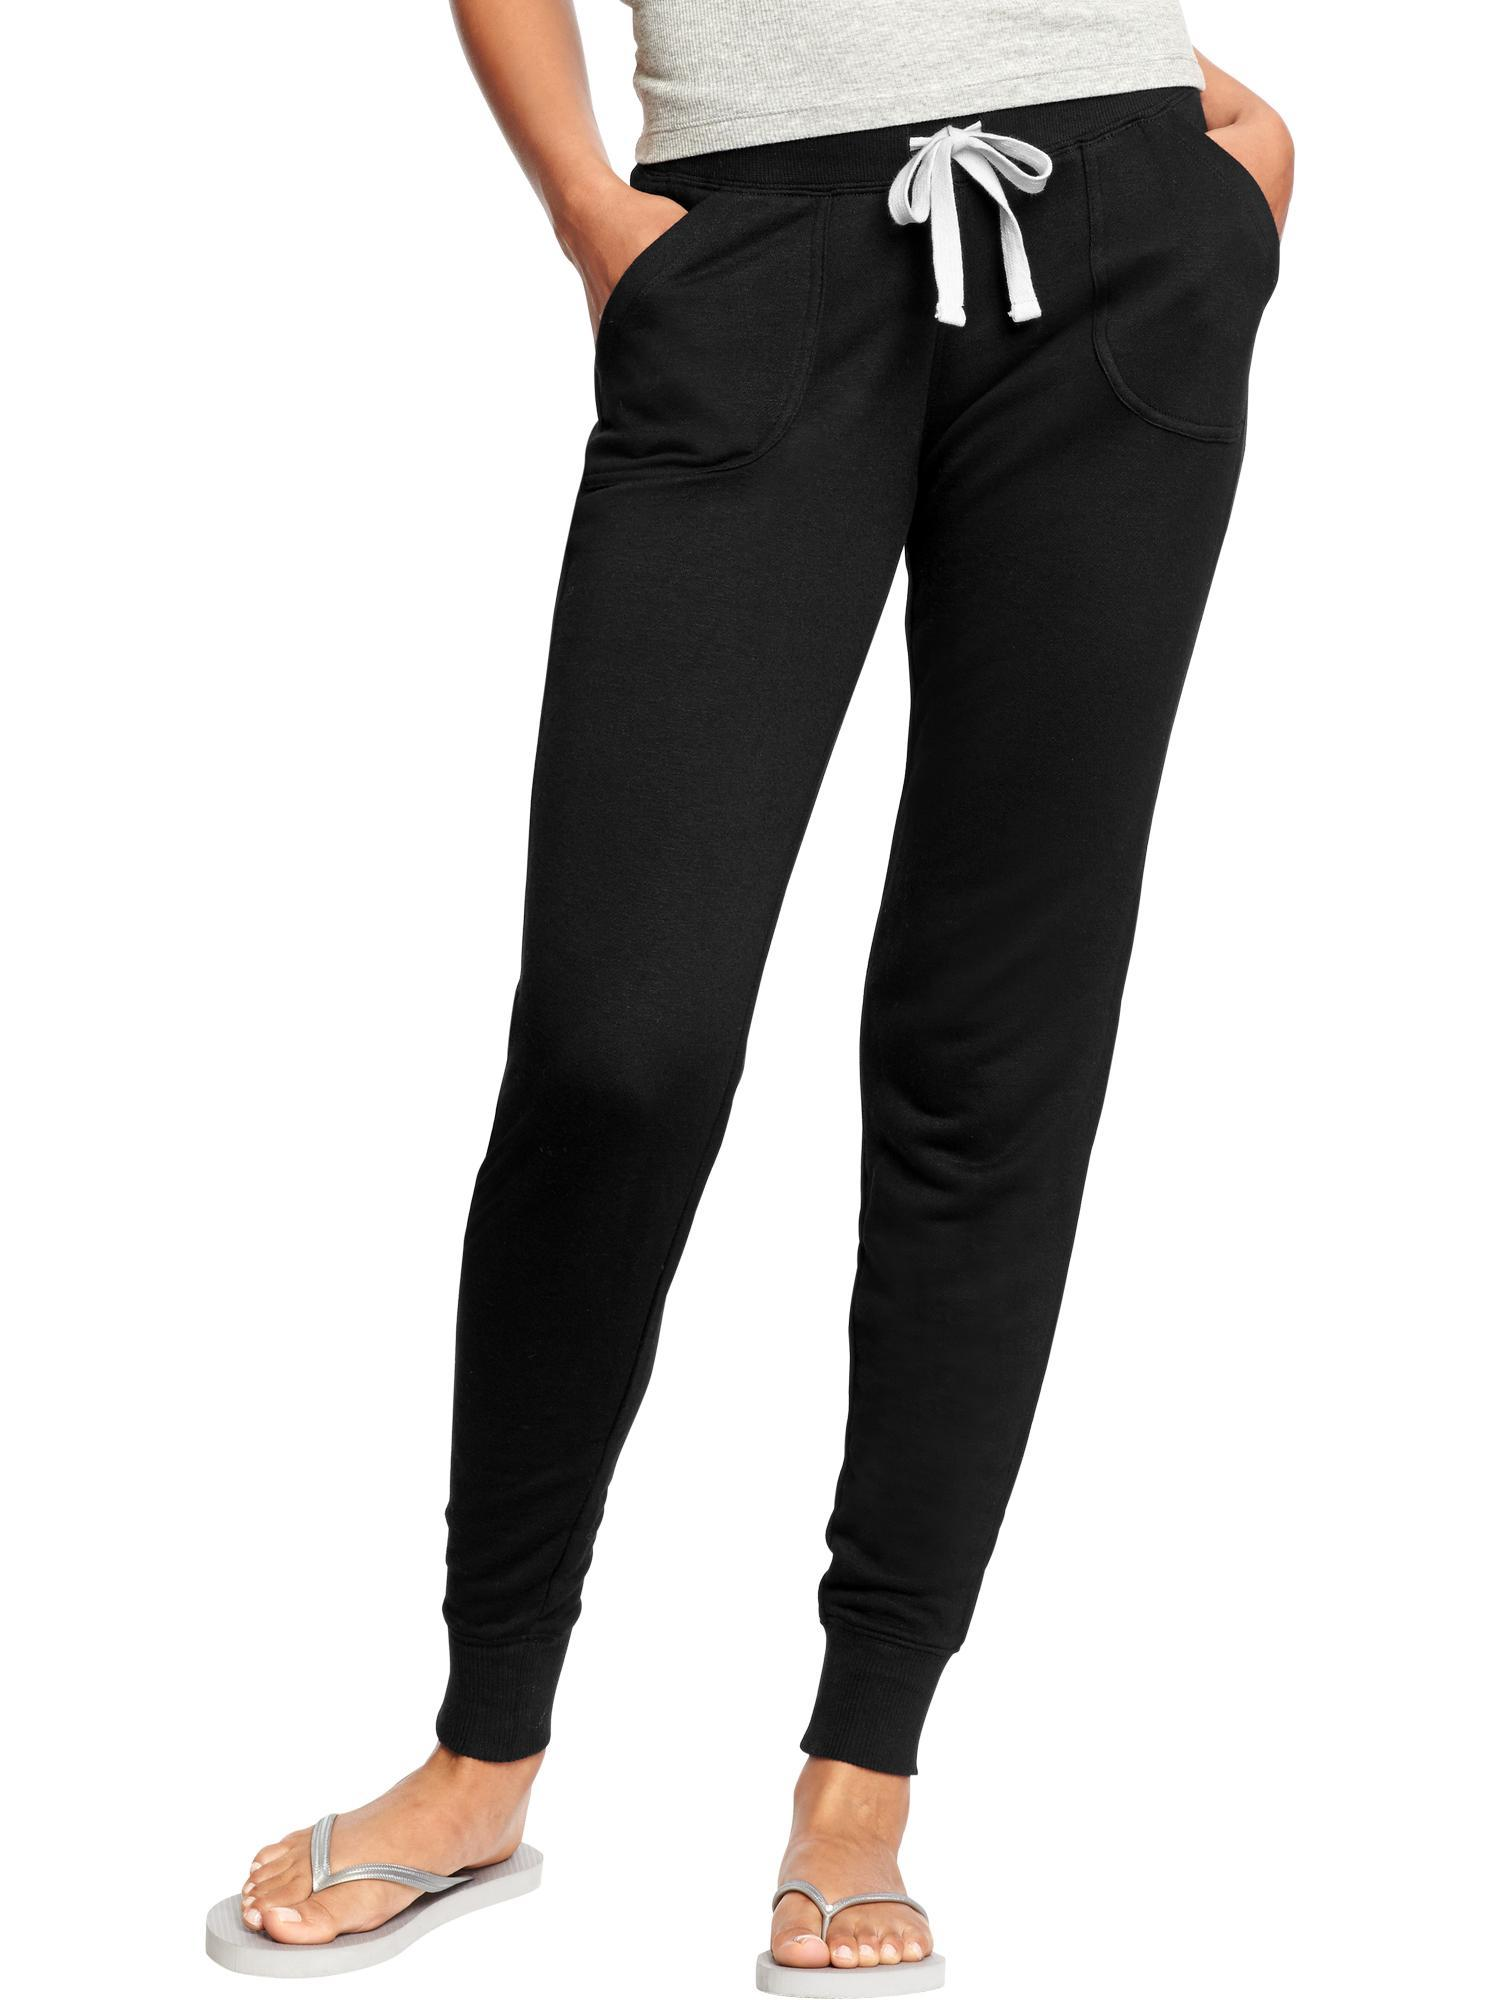 Free shipping on skinny pants for women at manga-hub.tk Shop for skinny trousers, ankle pants, sweatpants and more in the latest colors and prints. Enjoy free shipping and returns.